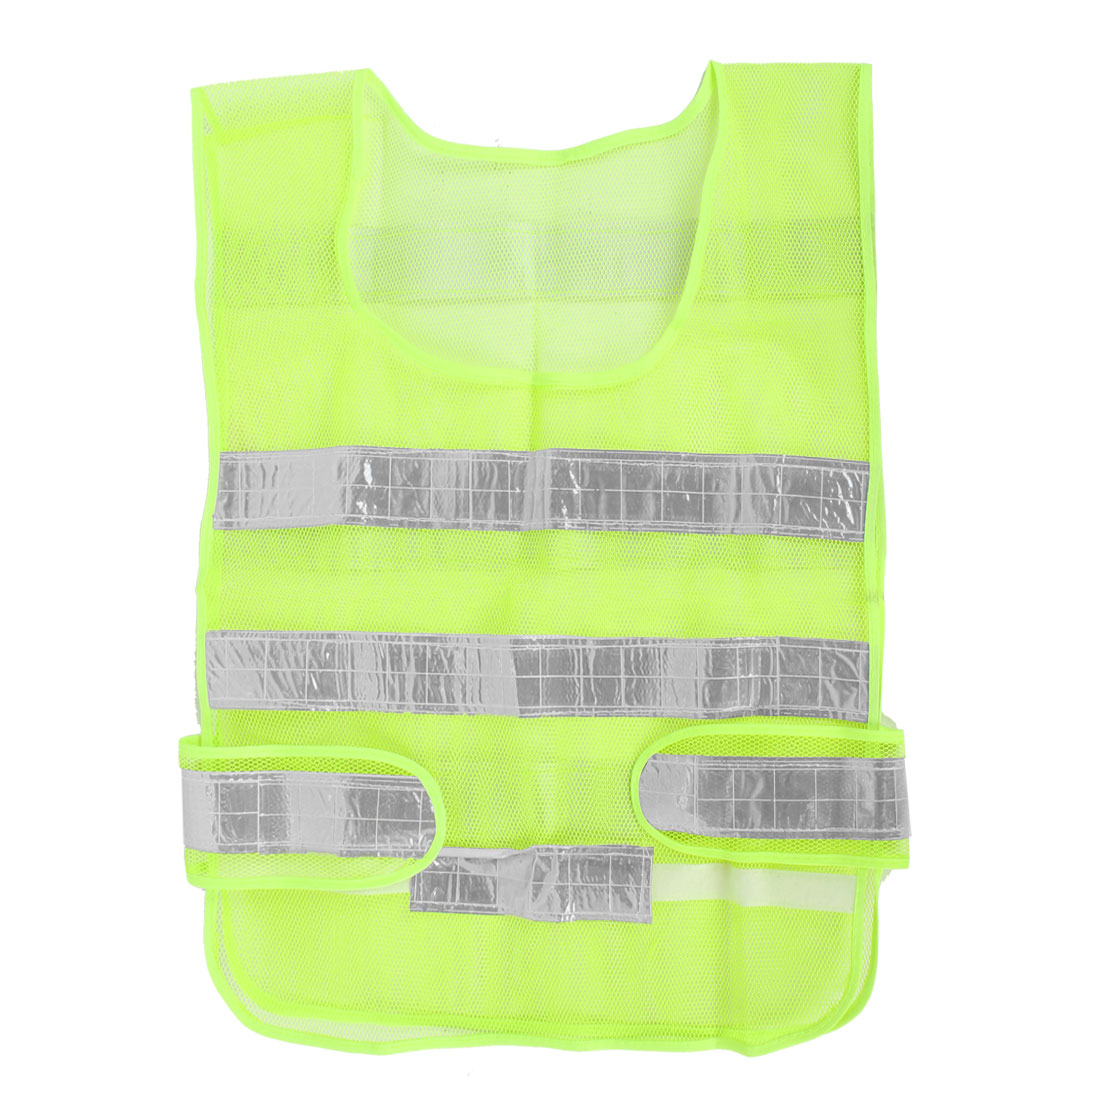 High-Visibility-Traffic-Worker-Warning-Reflective-Safety-Vest-Yellow-Green